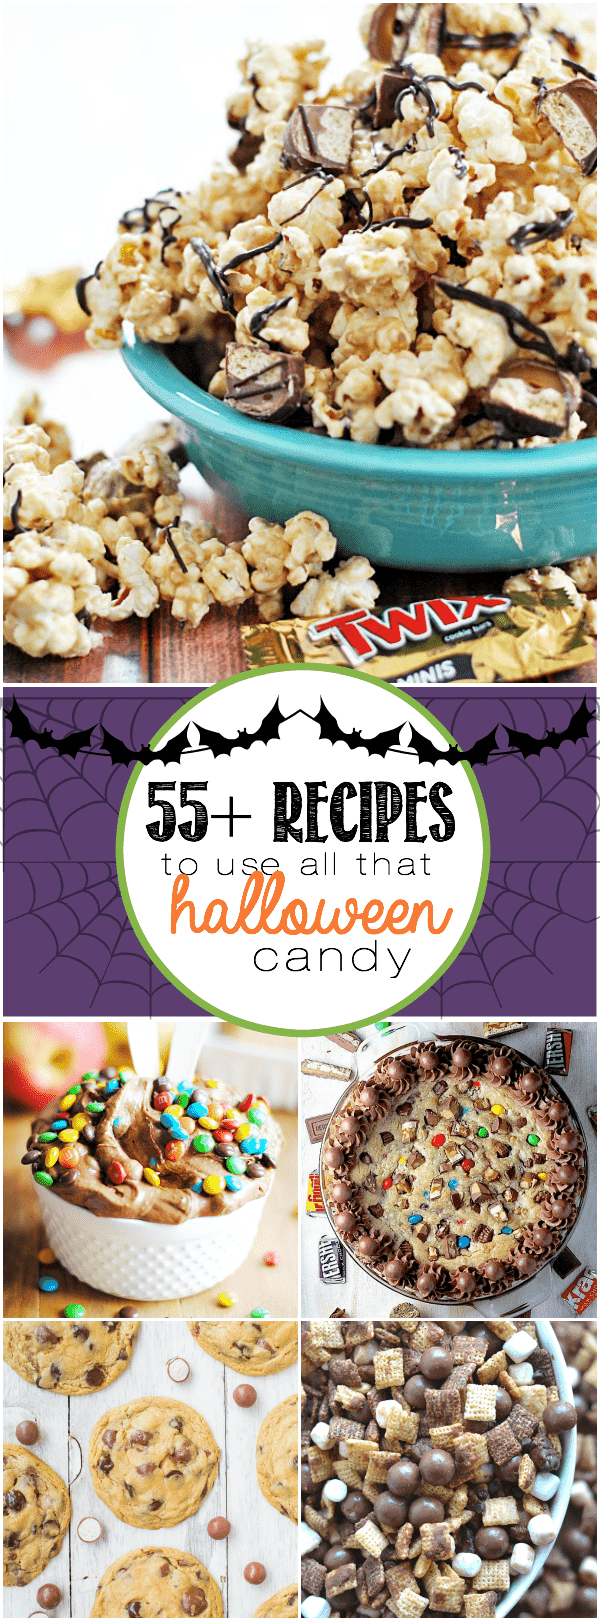 55+ Halloween Candy Recipes